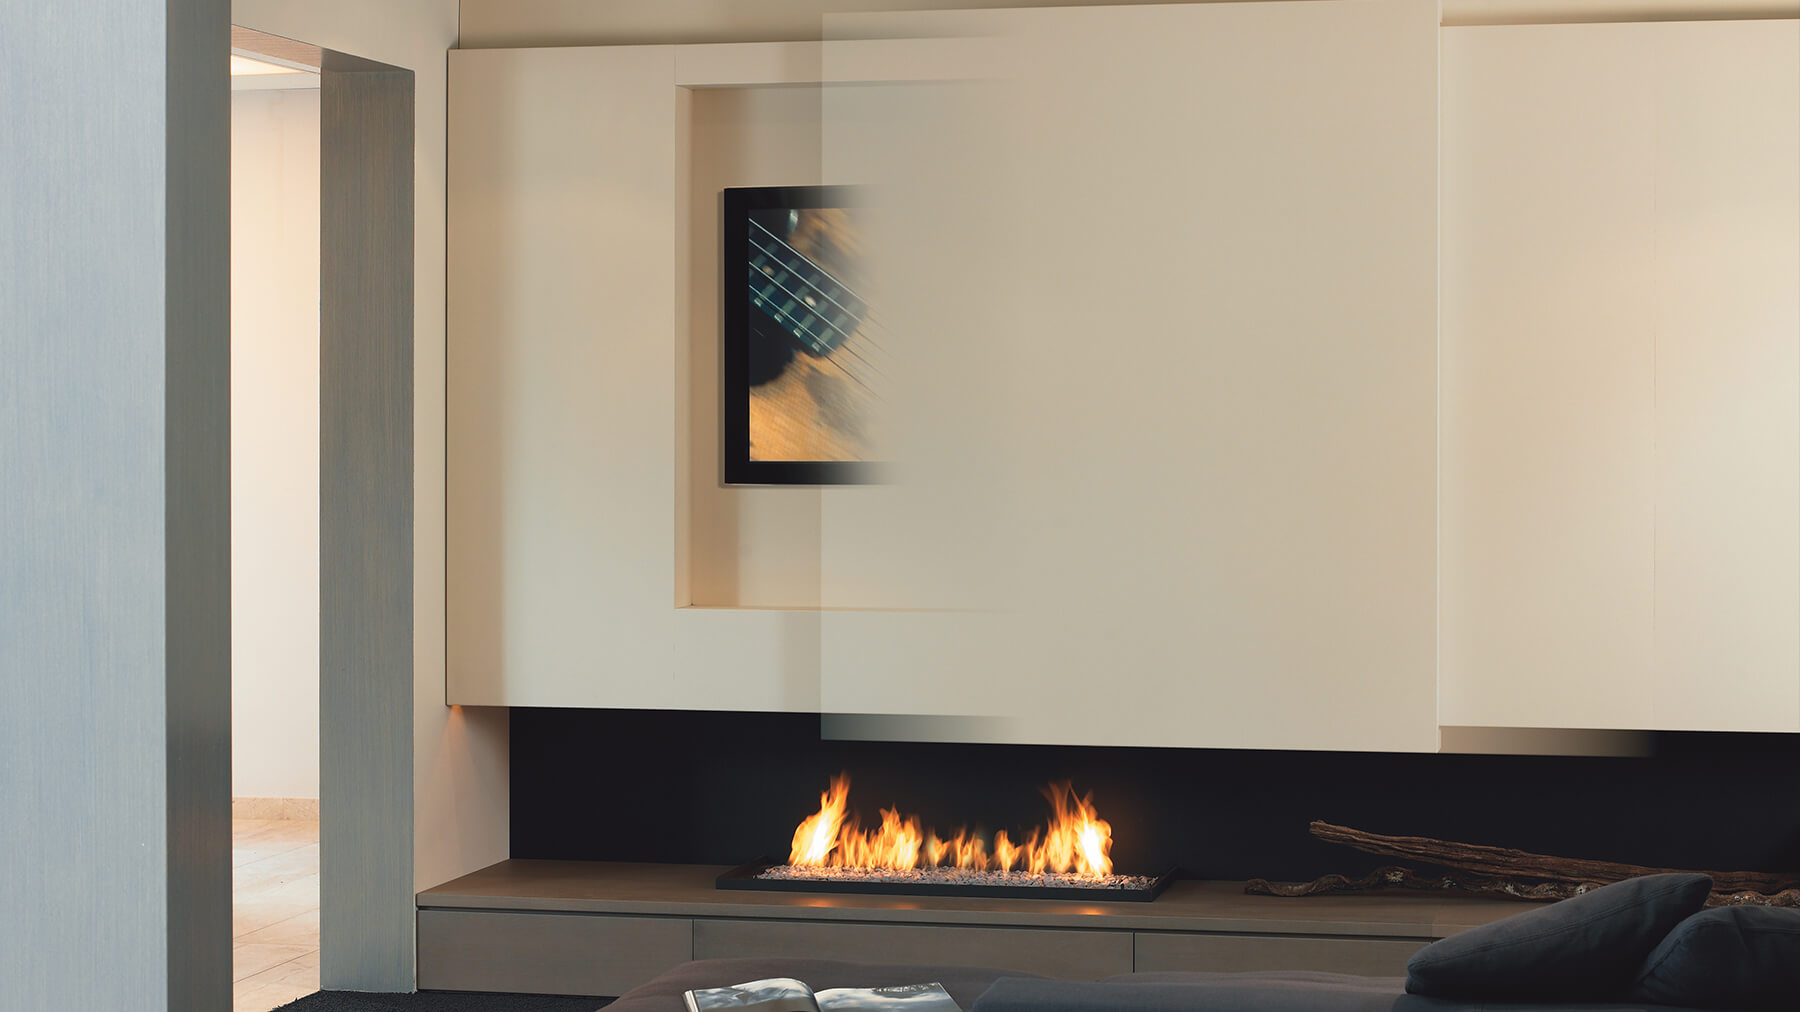 Fireplaces As Modern Home Centrepiece on Living Room With Fireplace And Flat Screen Tv